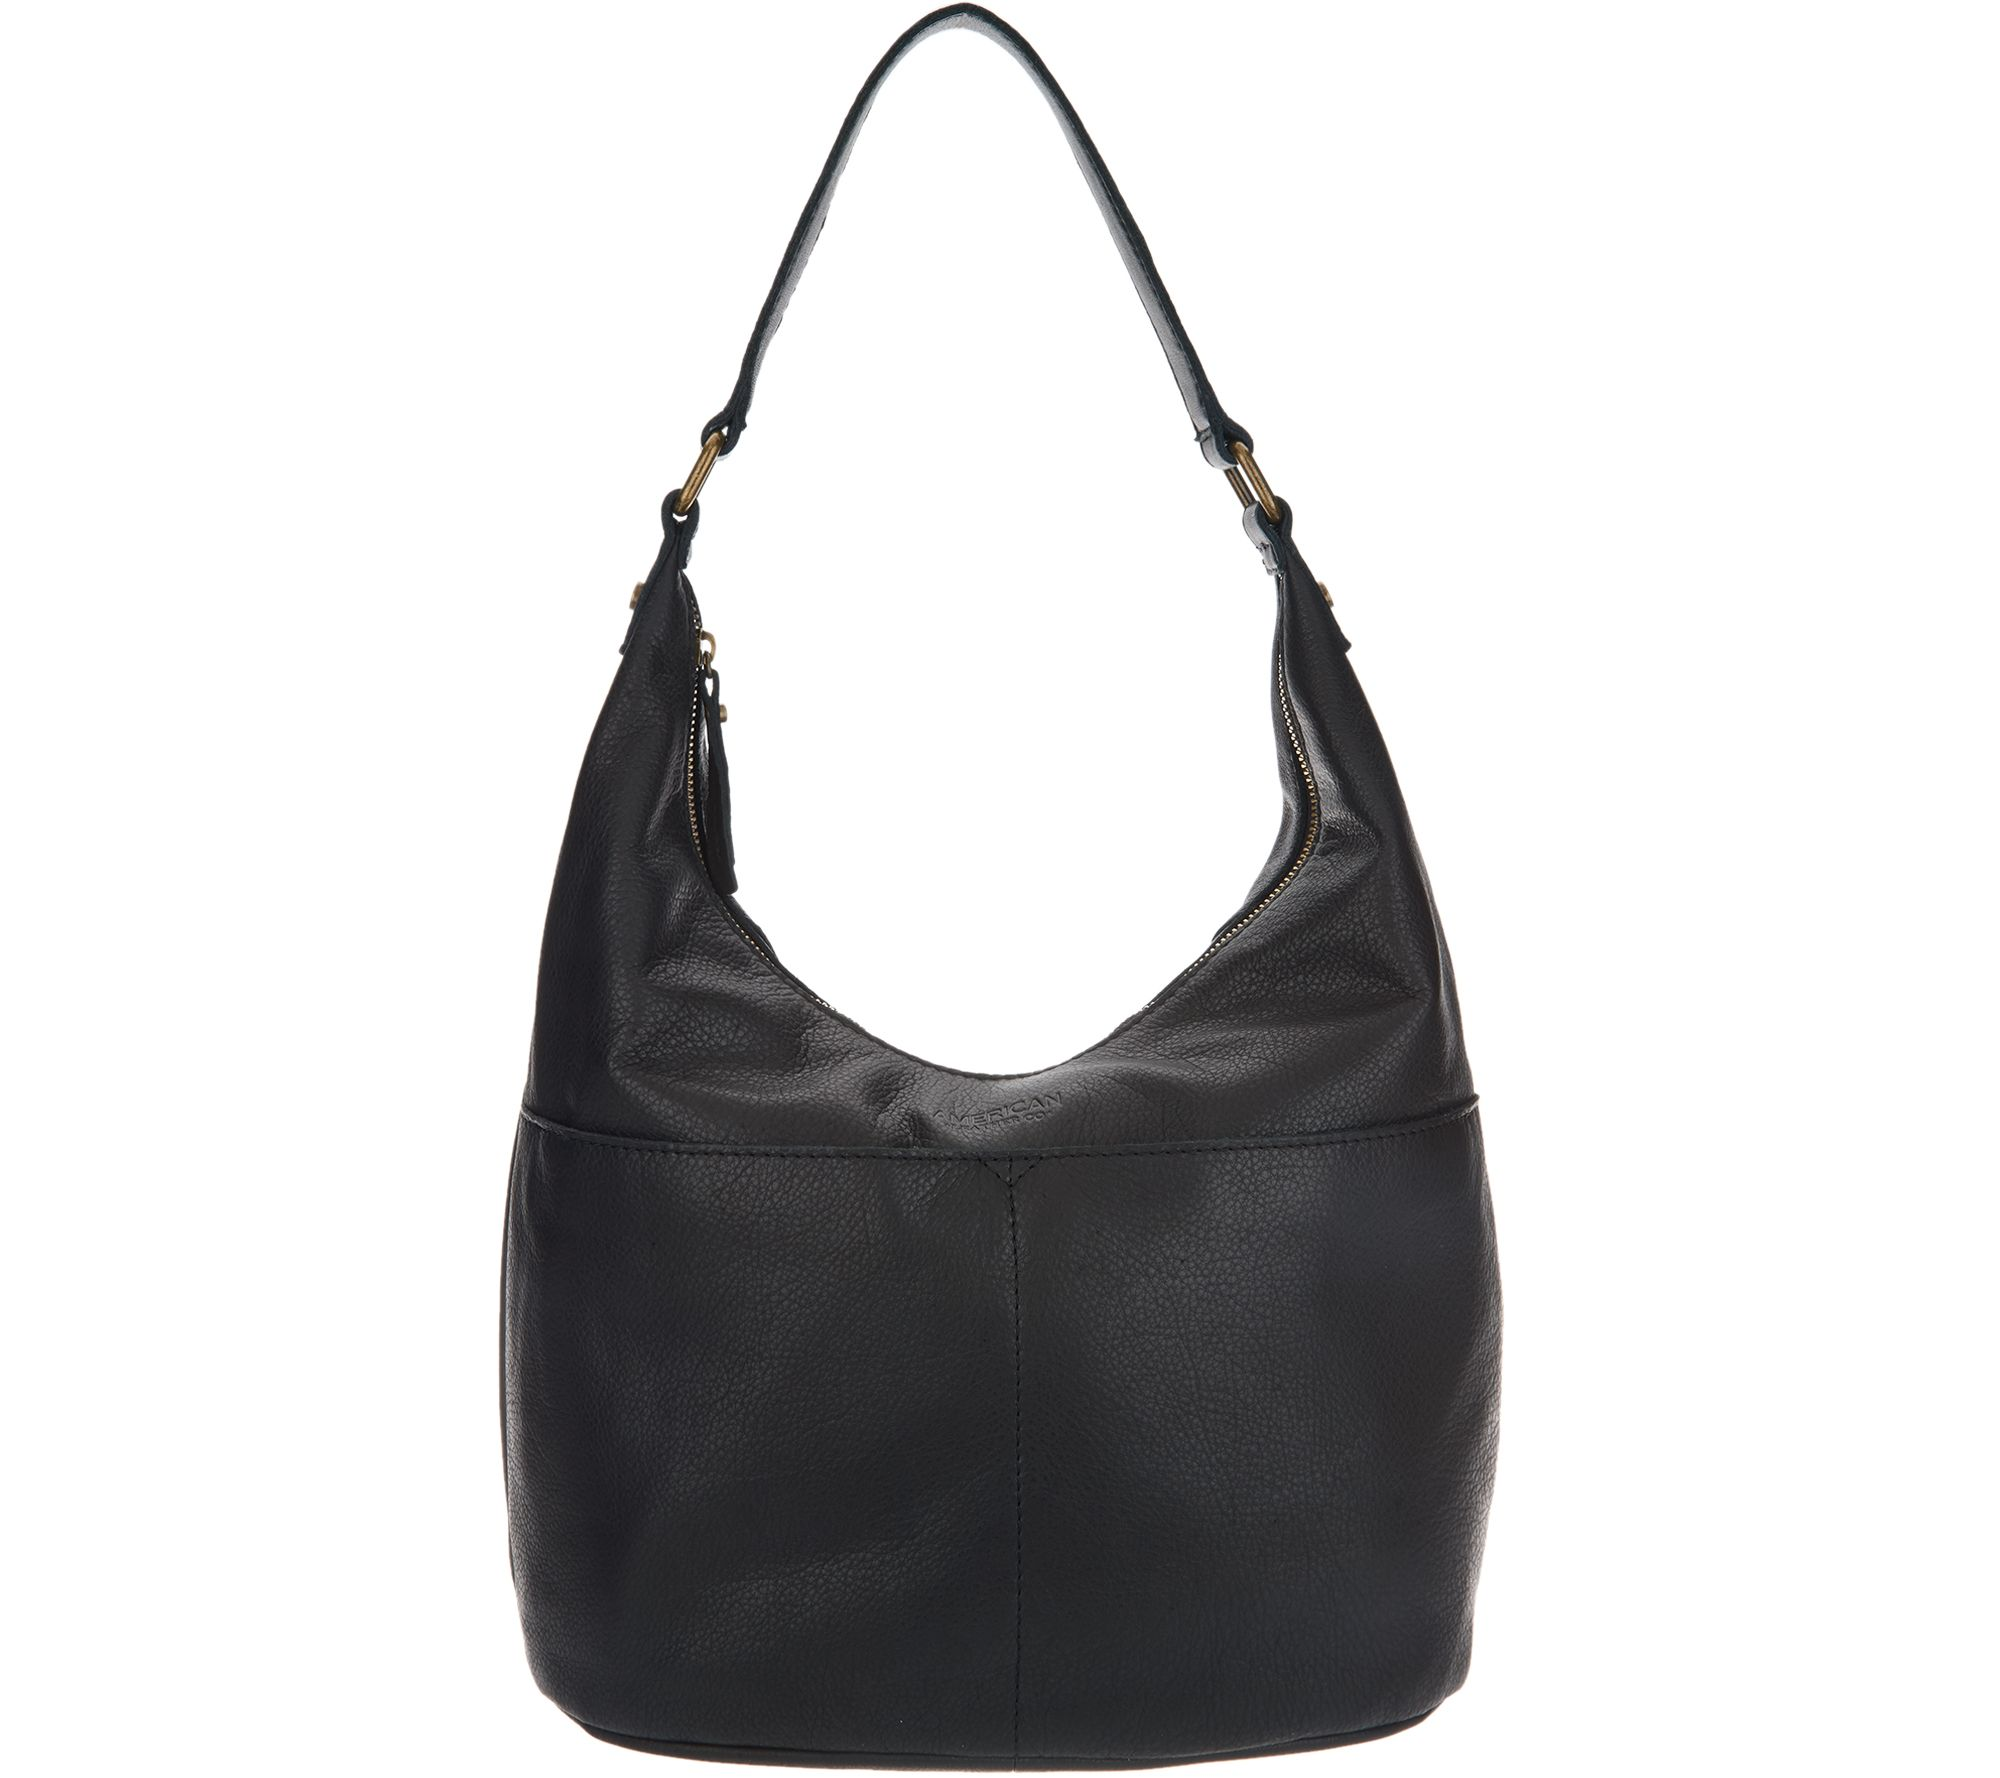 c97c630946 American Leather Co. Glove Leather Hobo Handbag - Carrie - Page 1 — QVC.com